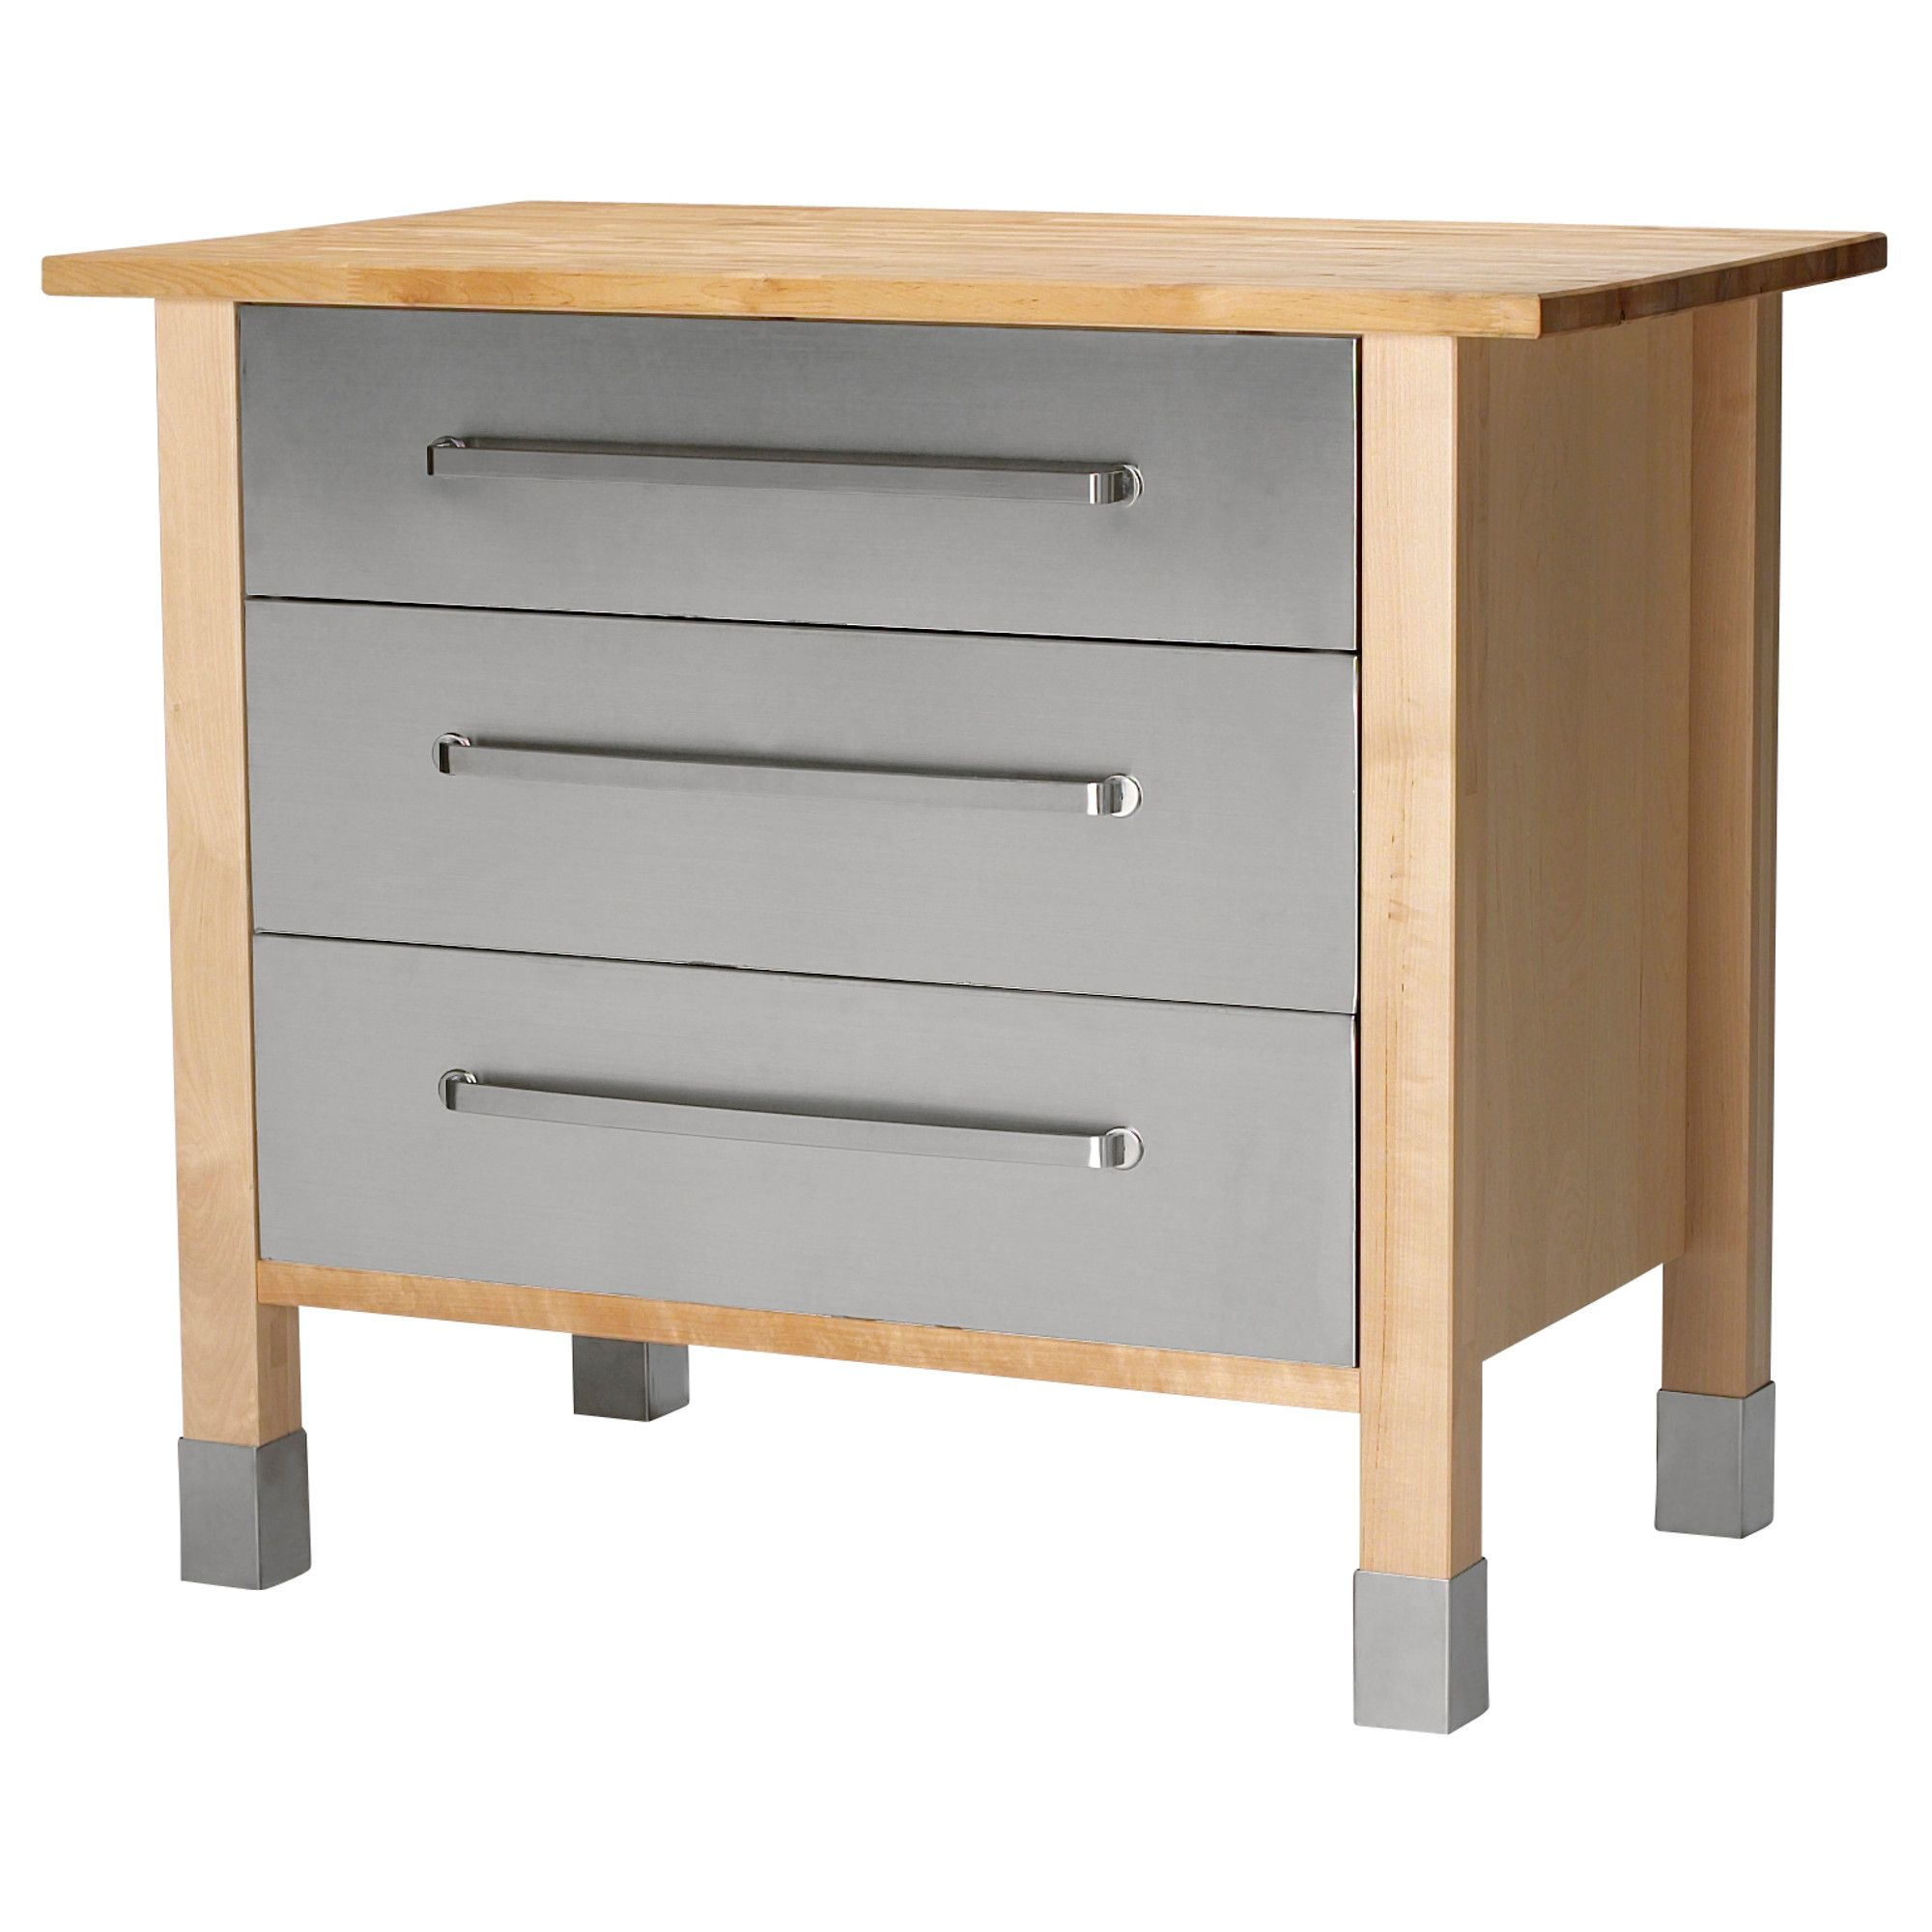 Ikea Värde Kuche VÄrde Drawer Unit Ikea Two Of These With A Plank On Top To